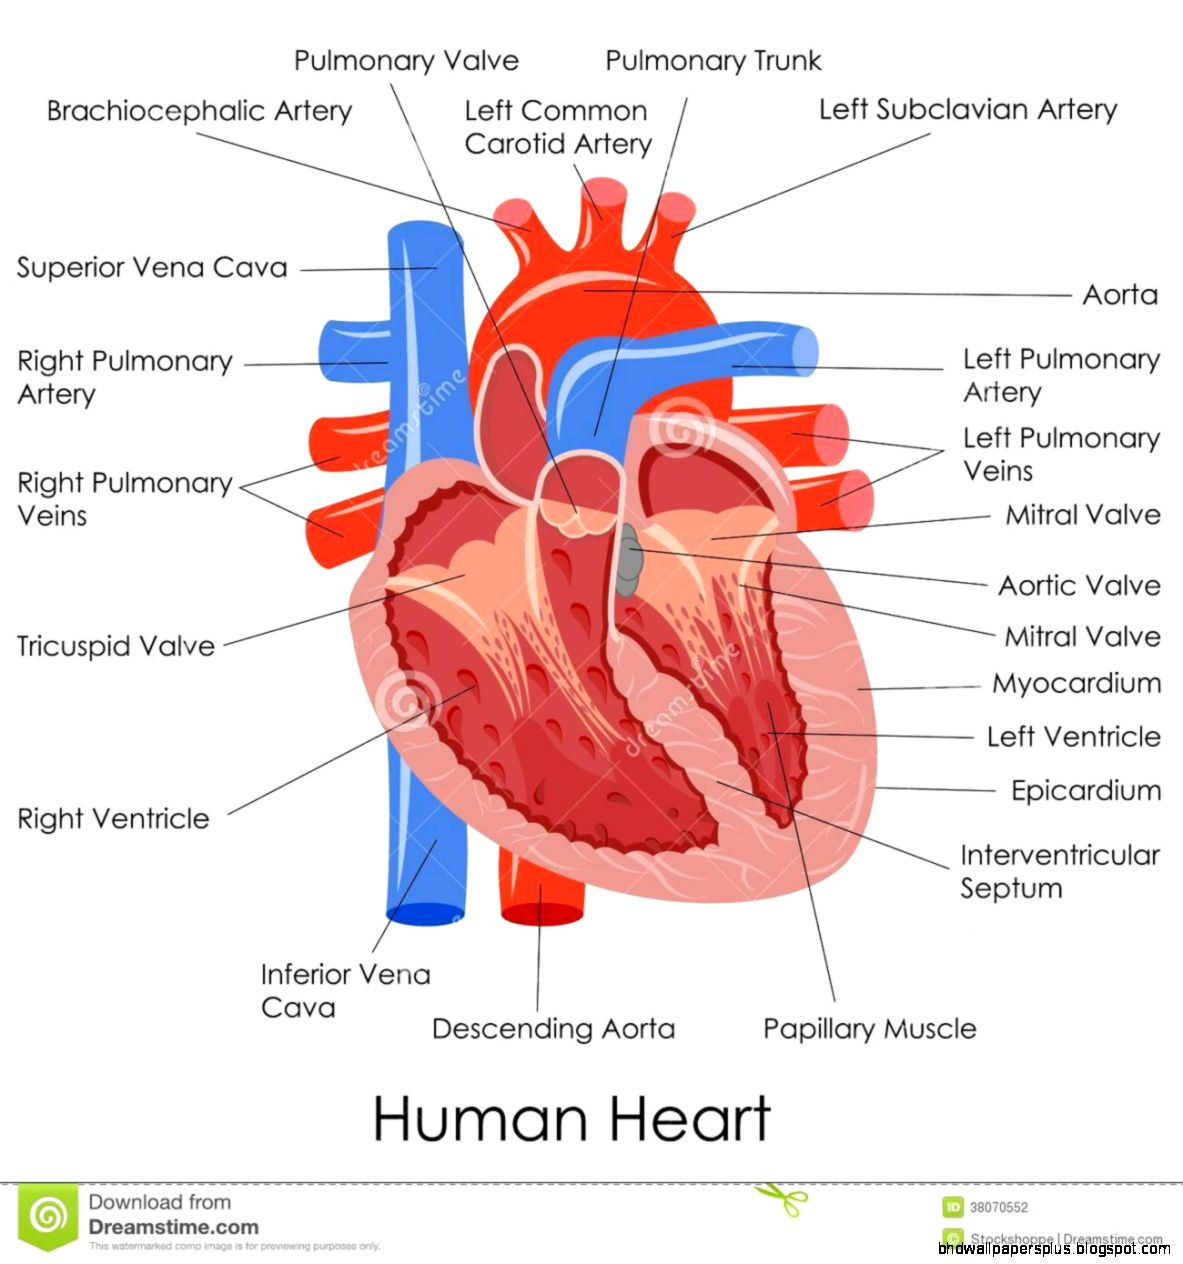 3 chambered heart diagram turtle shell anatomy august 2015 hd wallpapers plus